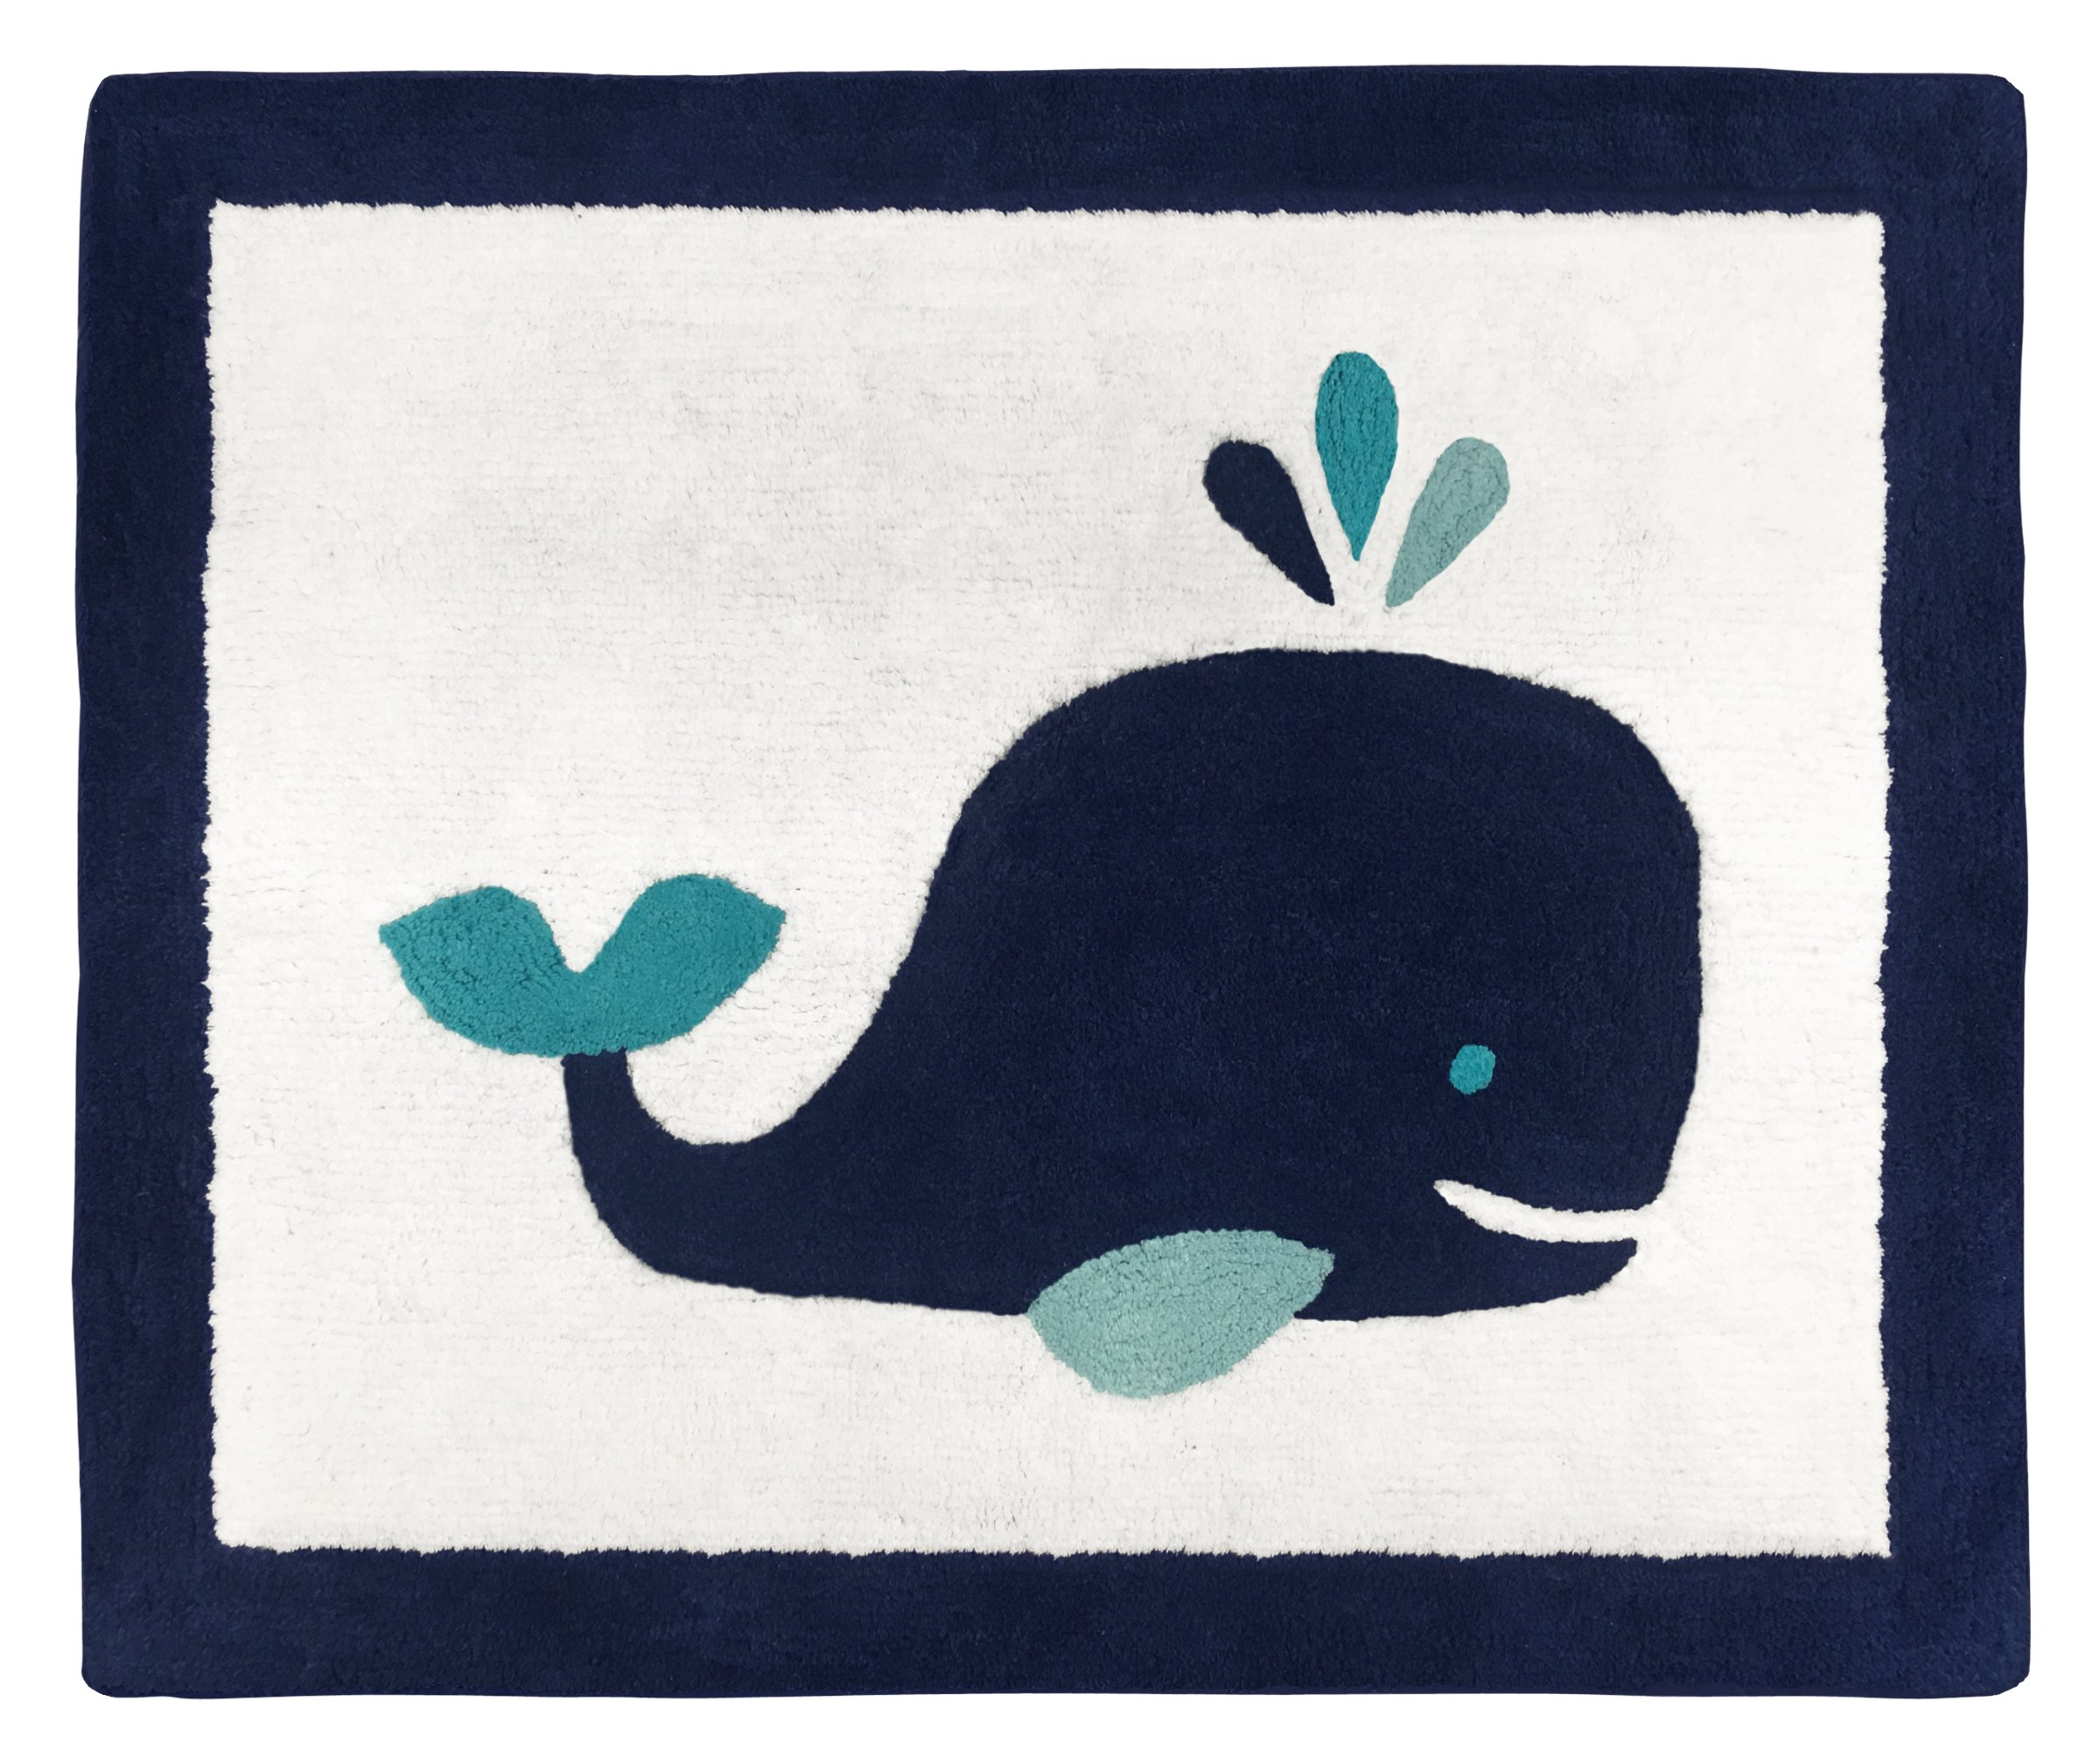 Sweet Jojo Designs Boy or Girl Accent Floor Rug Bedroom Decor for Blue Whale Kids Bedding Collection by Sweet Jojo Designs